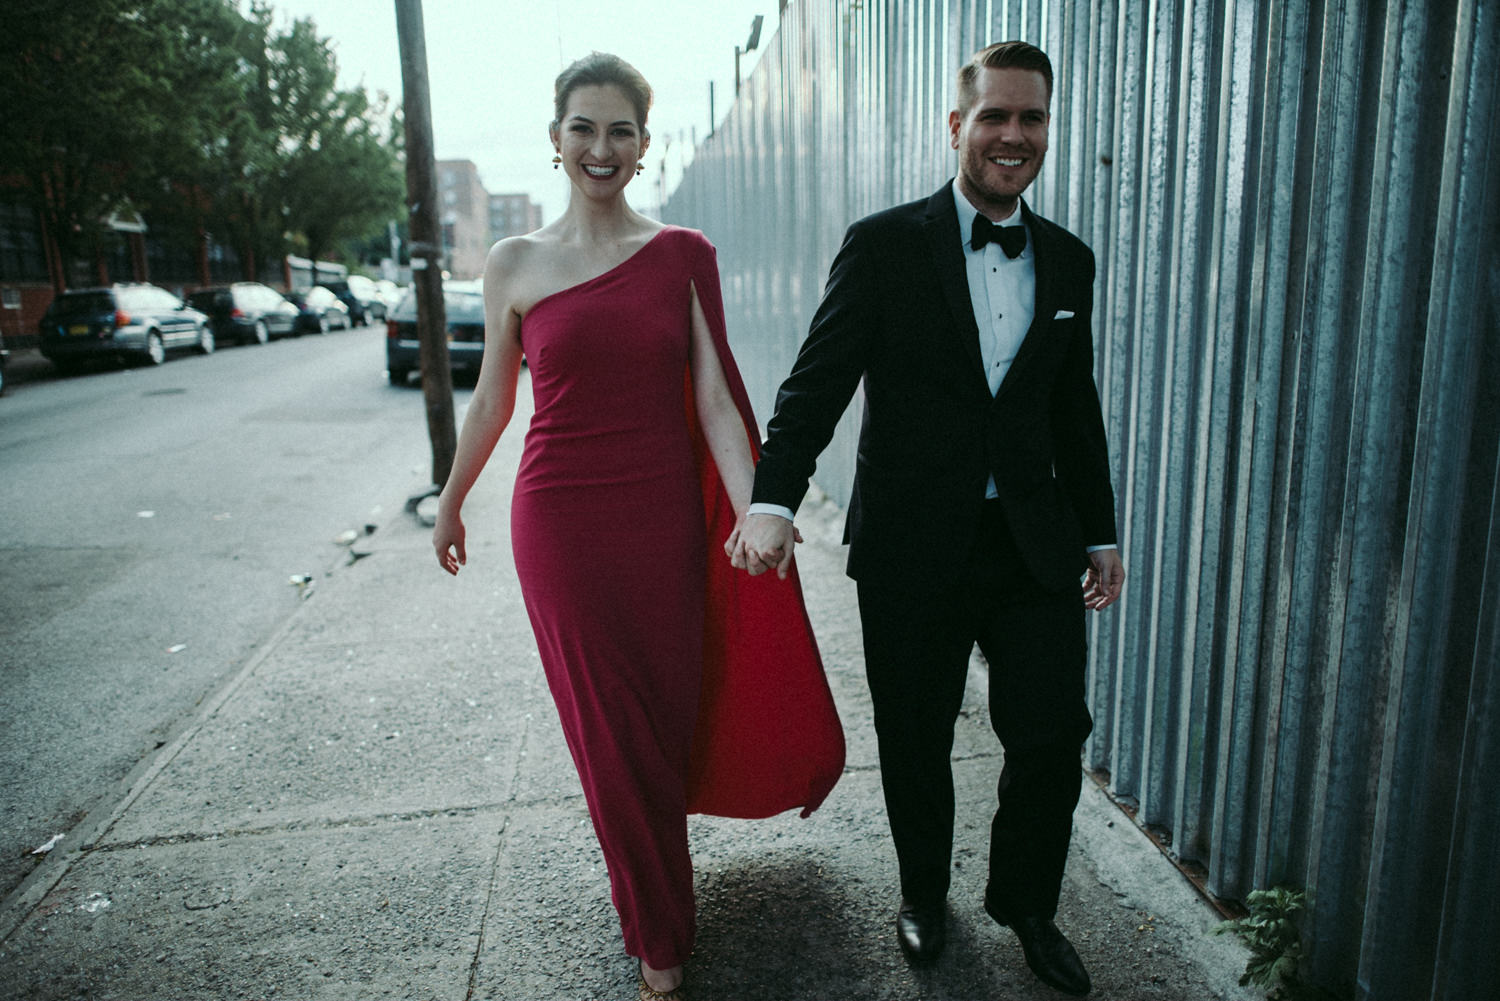 new-york-elopement-engagement-pictures-giancarlo-photography-163.jpg